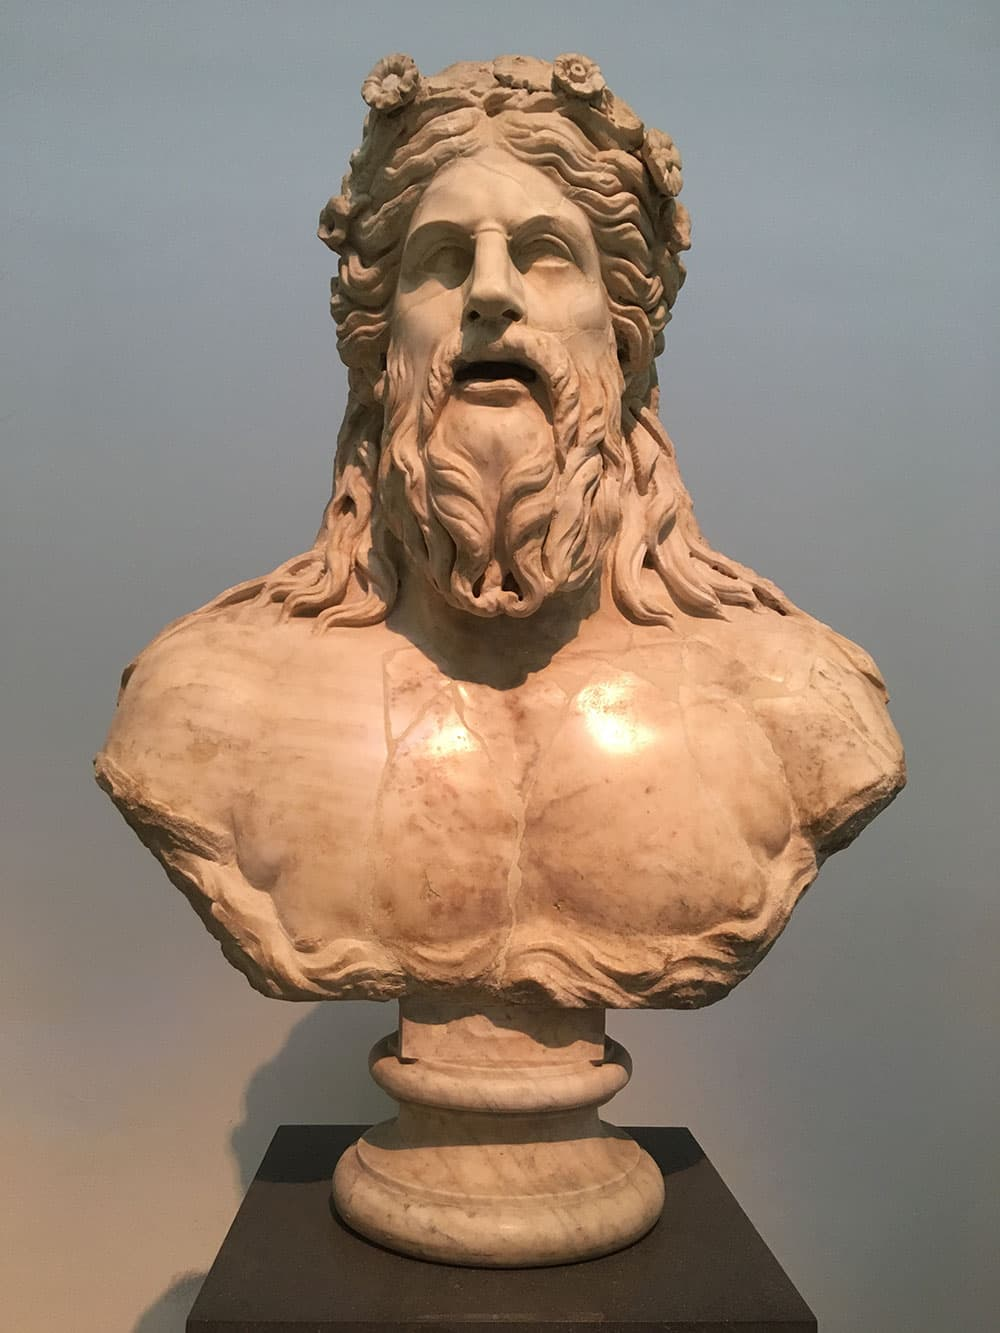 A Greek bust inside the National Archaeological Museum